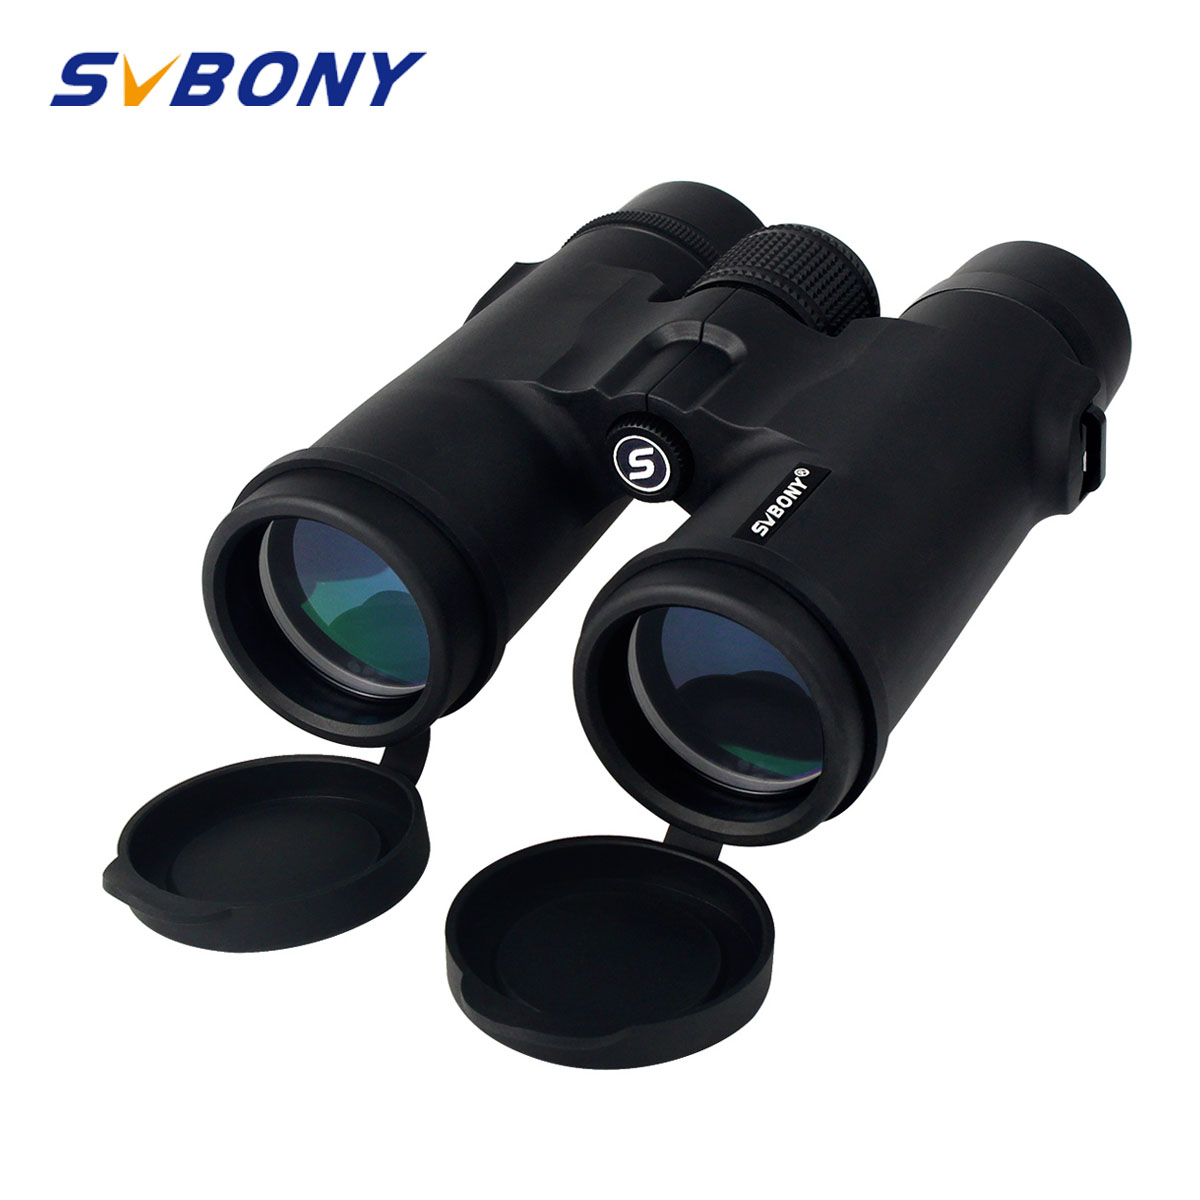 SVBONY SV-21 Binoculars 8x42 Multi-Coated Roof Prism with Twist-up Outdoor Binoculars for Hunting Bird Watching Camping F9117AB Бинокль